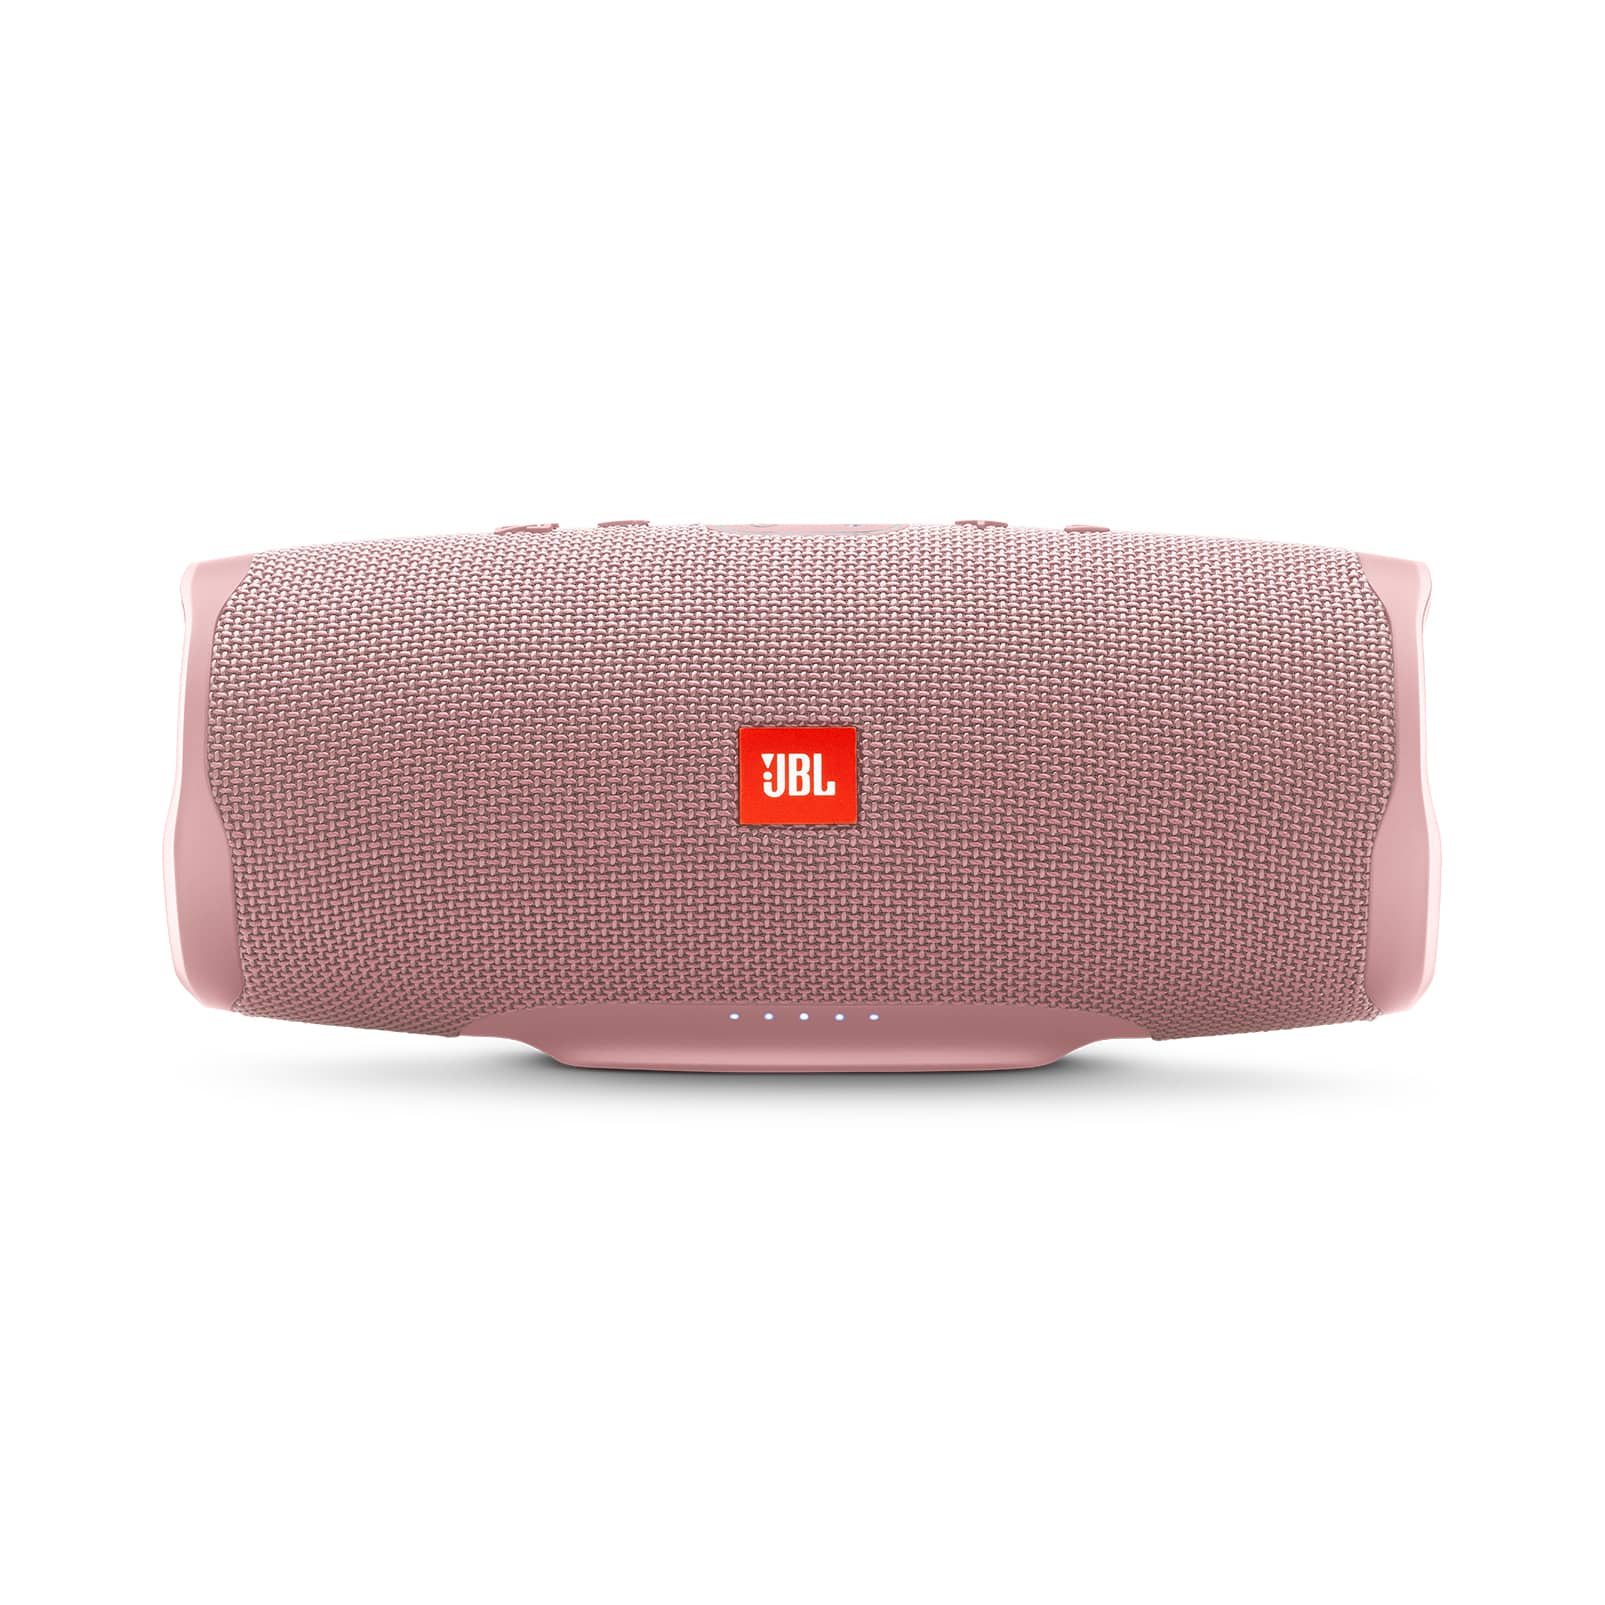 JBL Charge 4 kabelloser Bluetooth-Lautsprecher High-End-Stereo-Sound IPX7 für 119,00 Euro